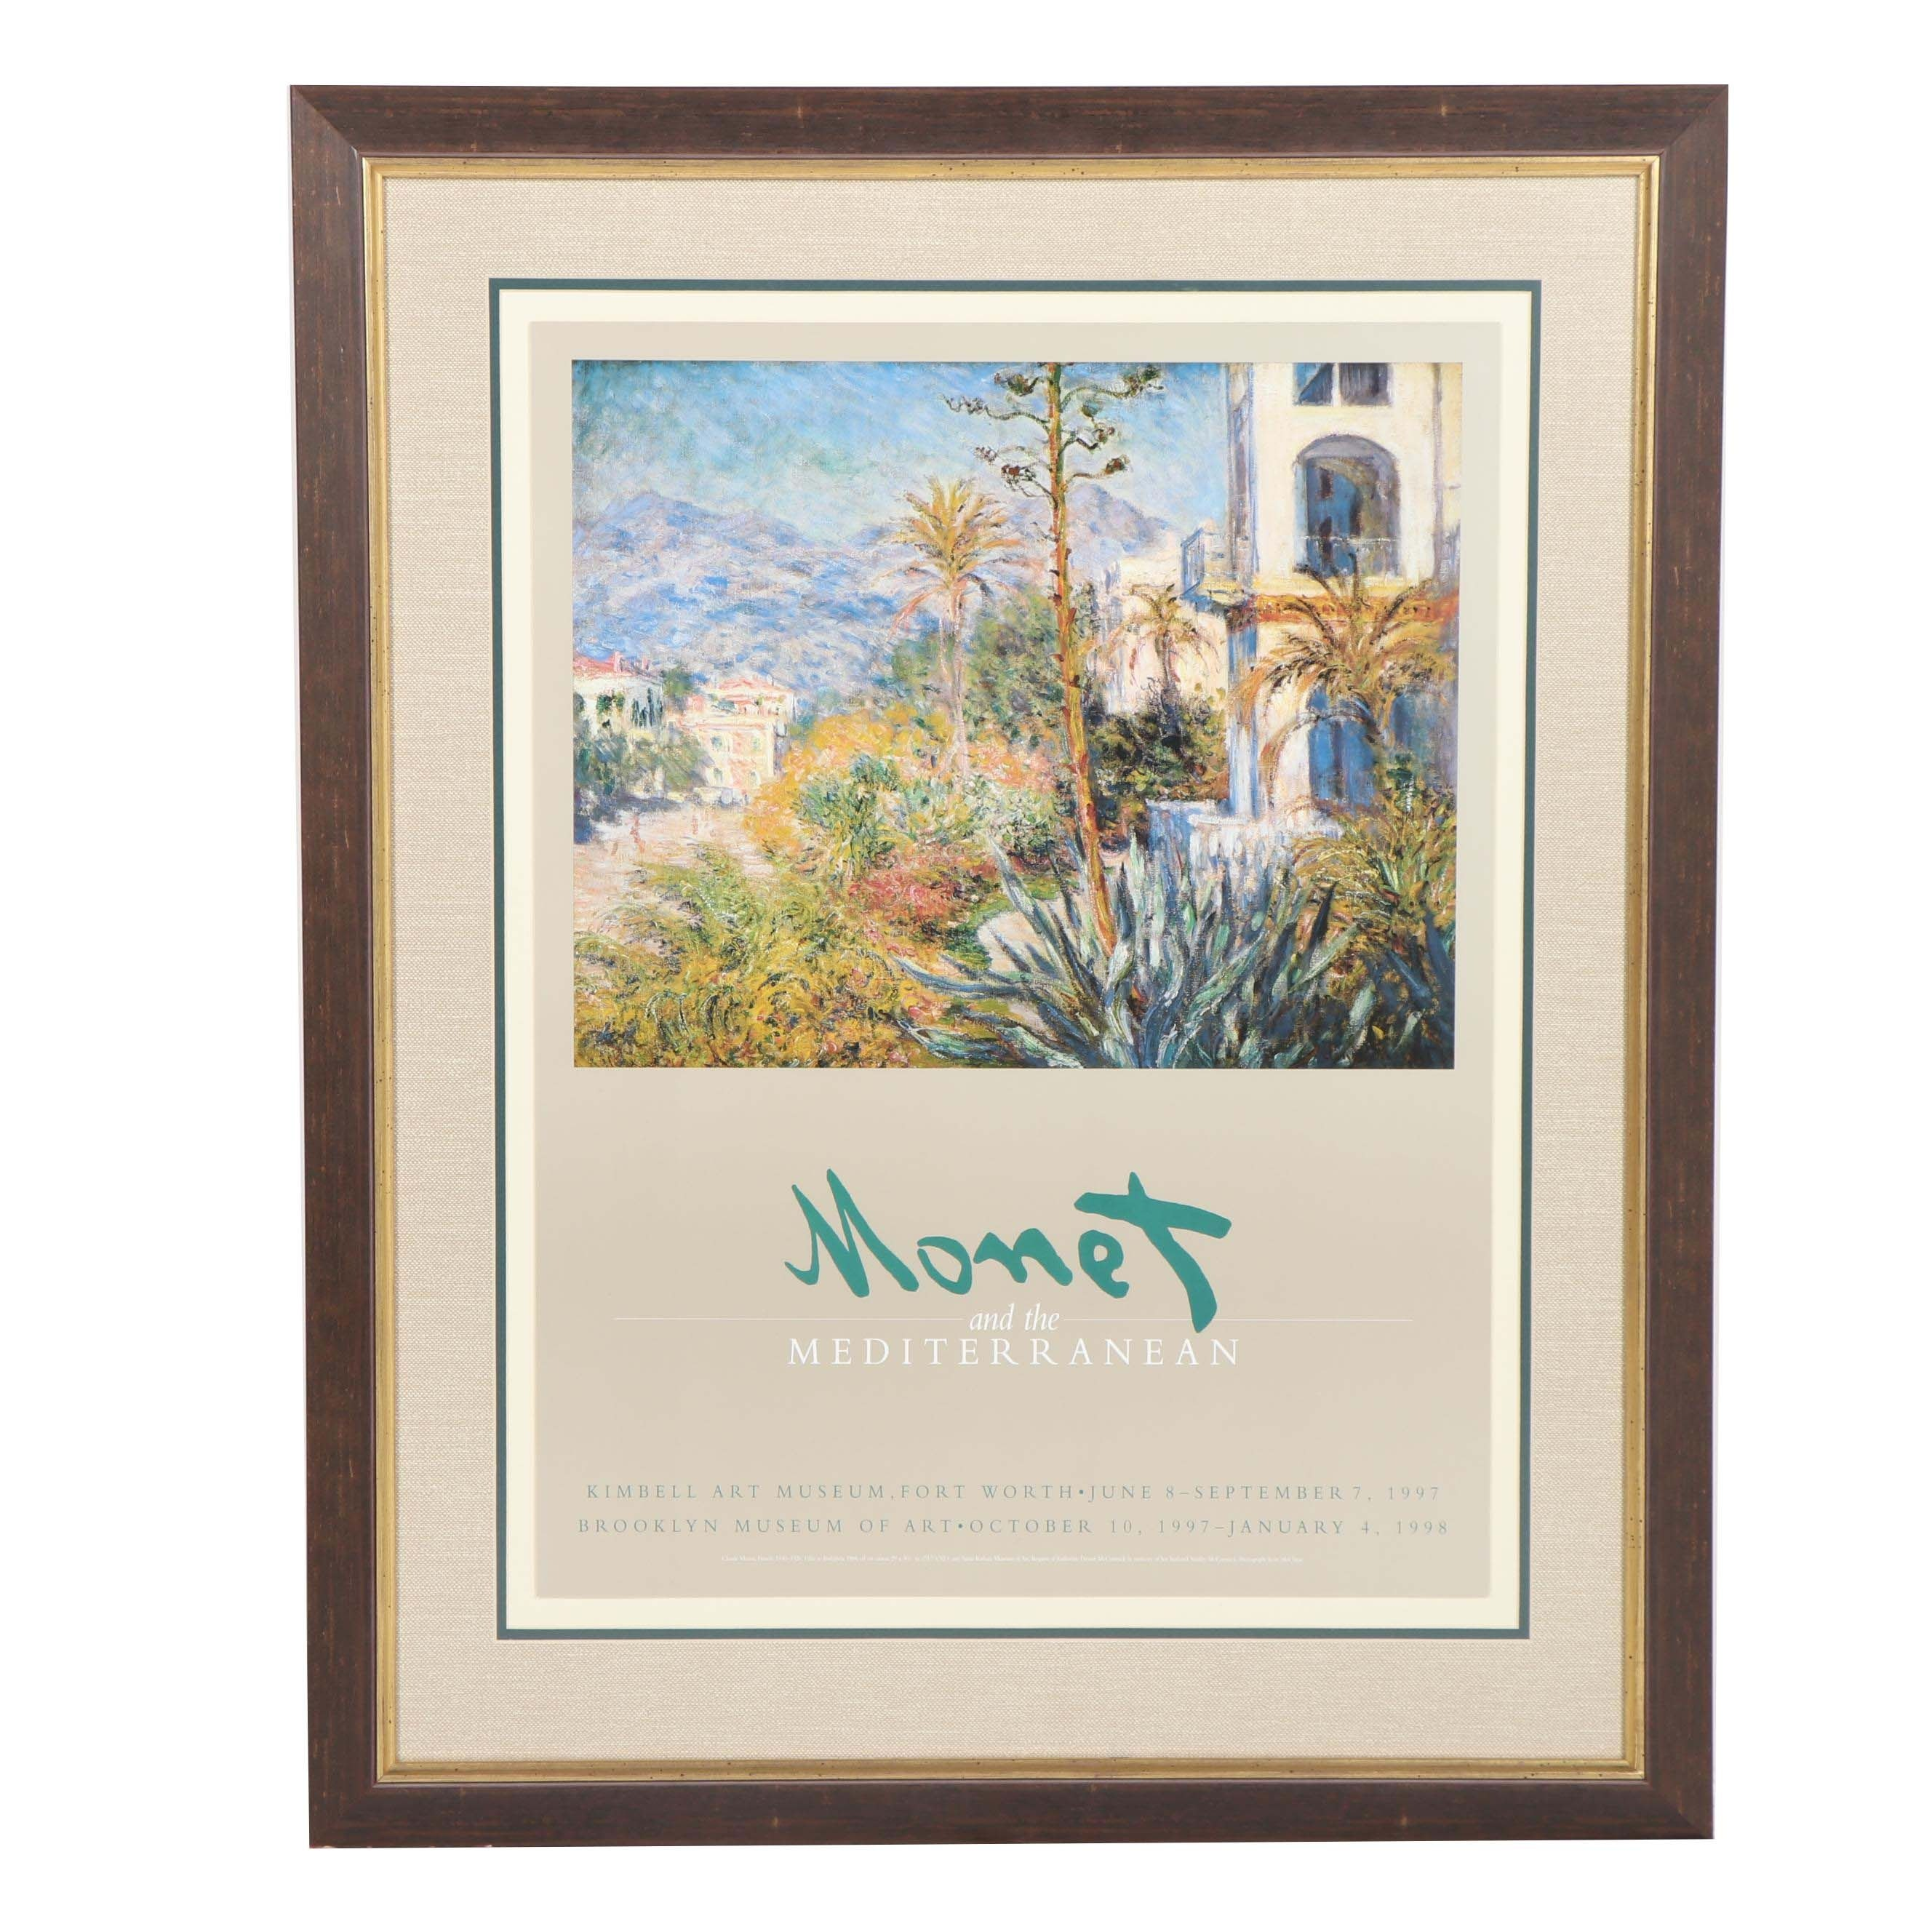 "Claude Monet ""Monet and the Mediterranean"" Art Gallery Exhibition Poster"